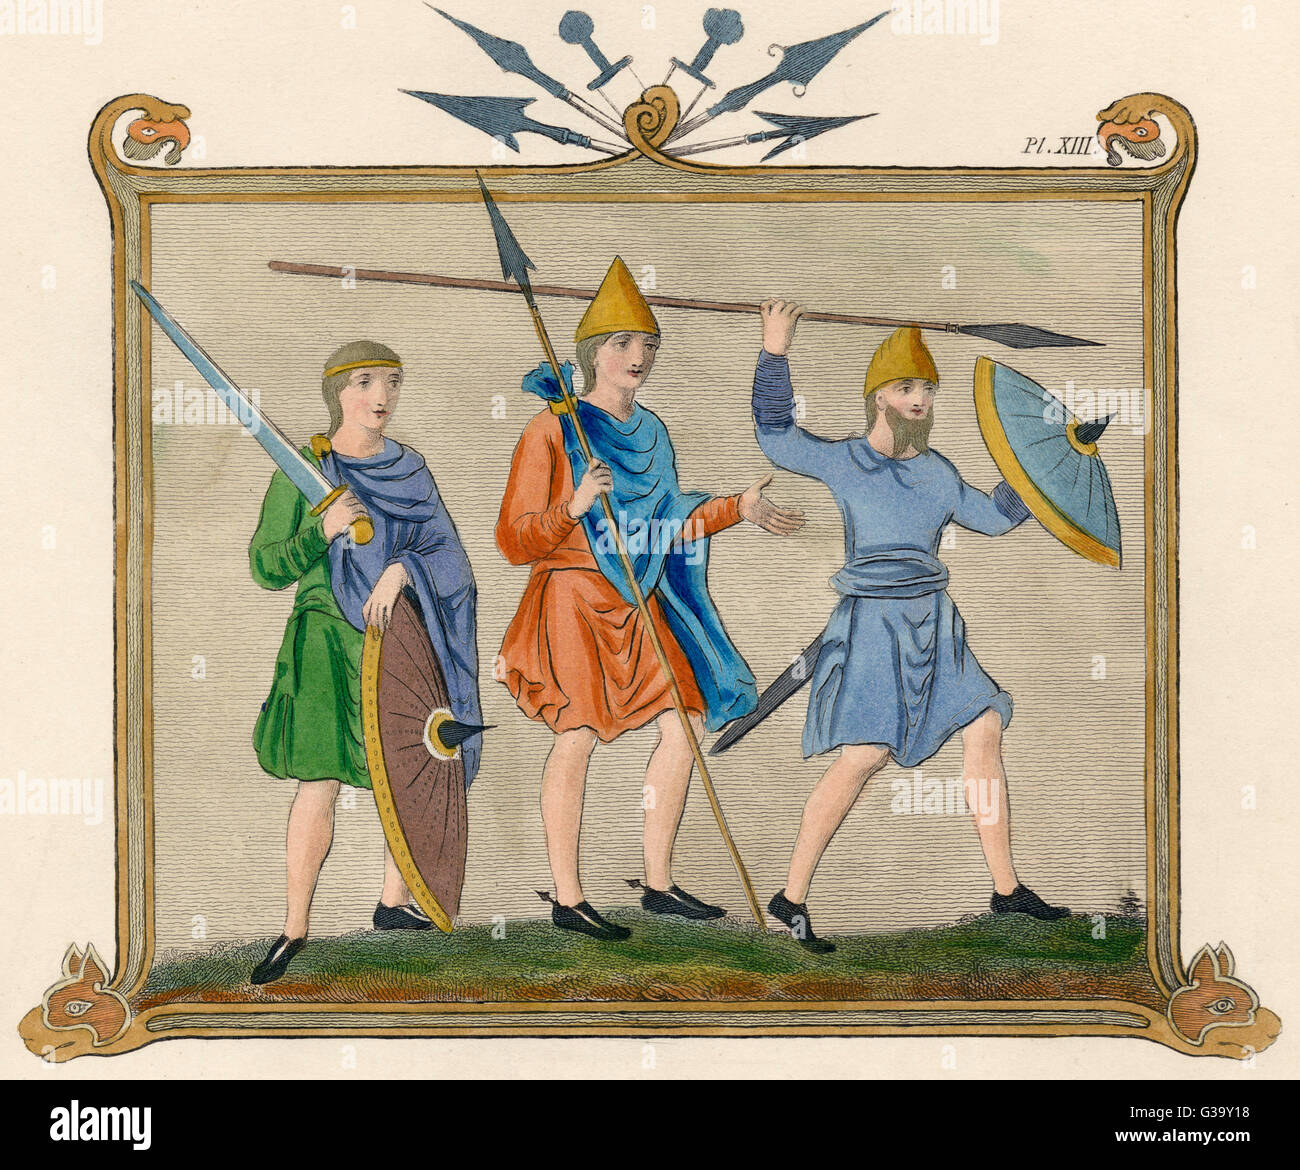 Saxon soldiers with spears,  broad swords and shields.        Date: 8th century - Stock Image